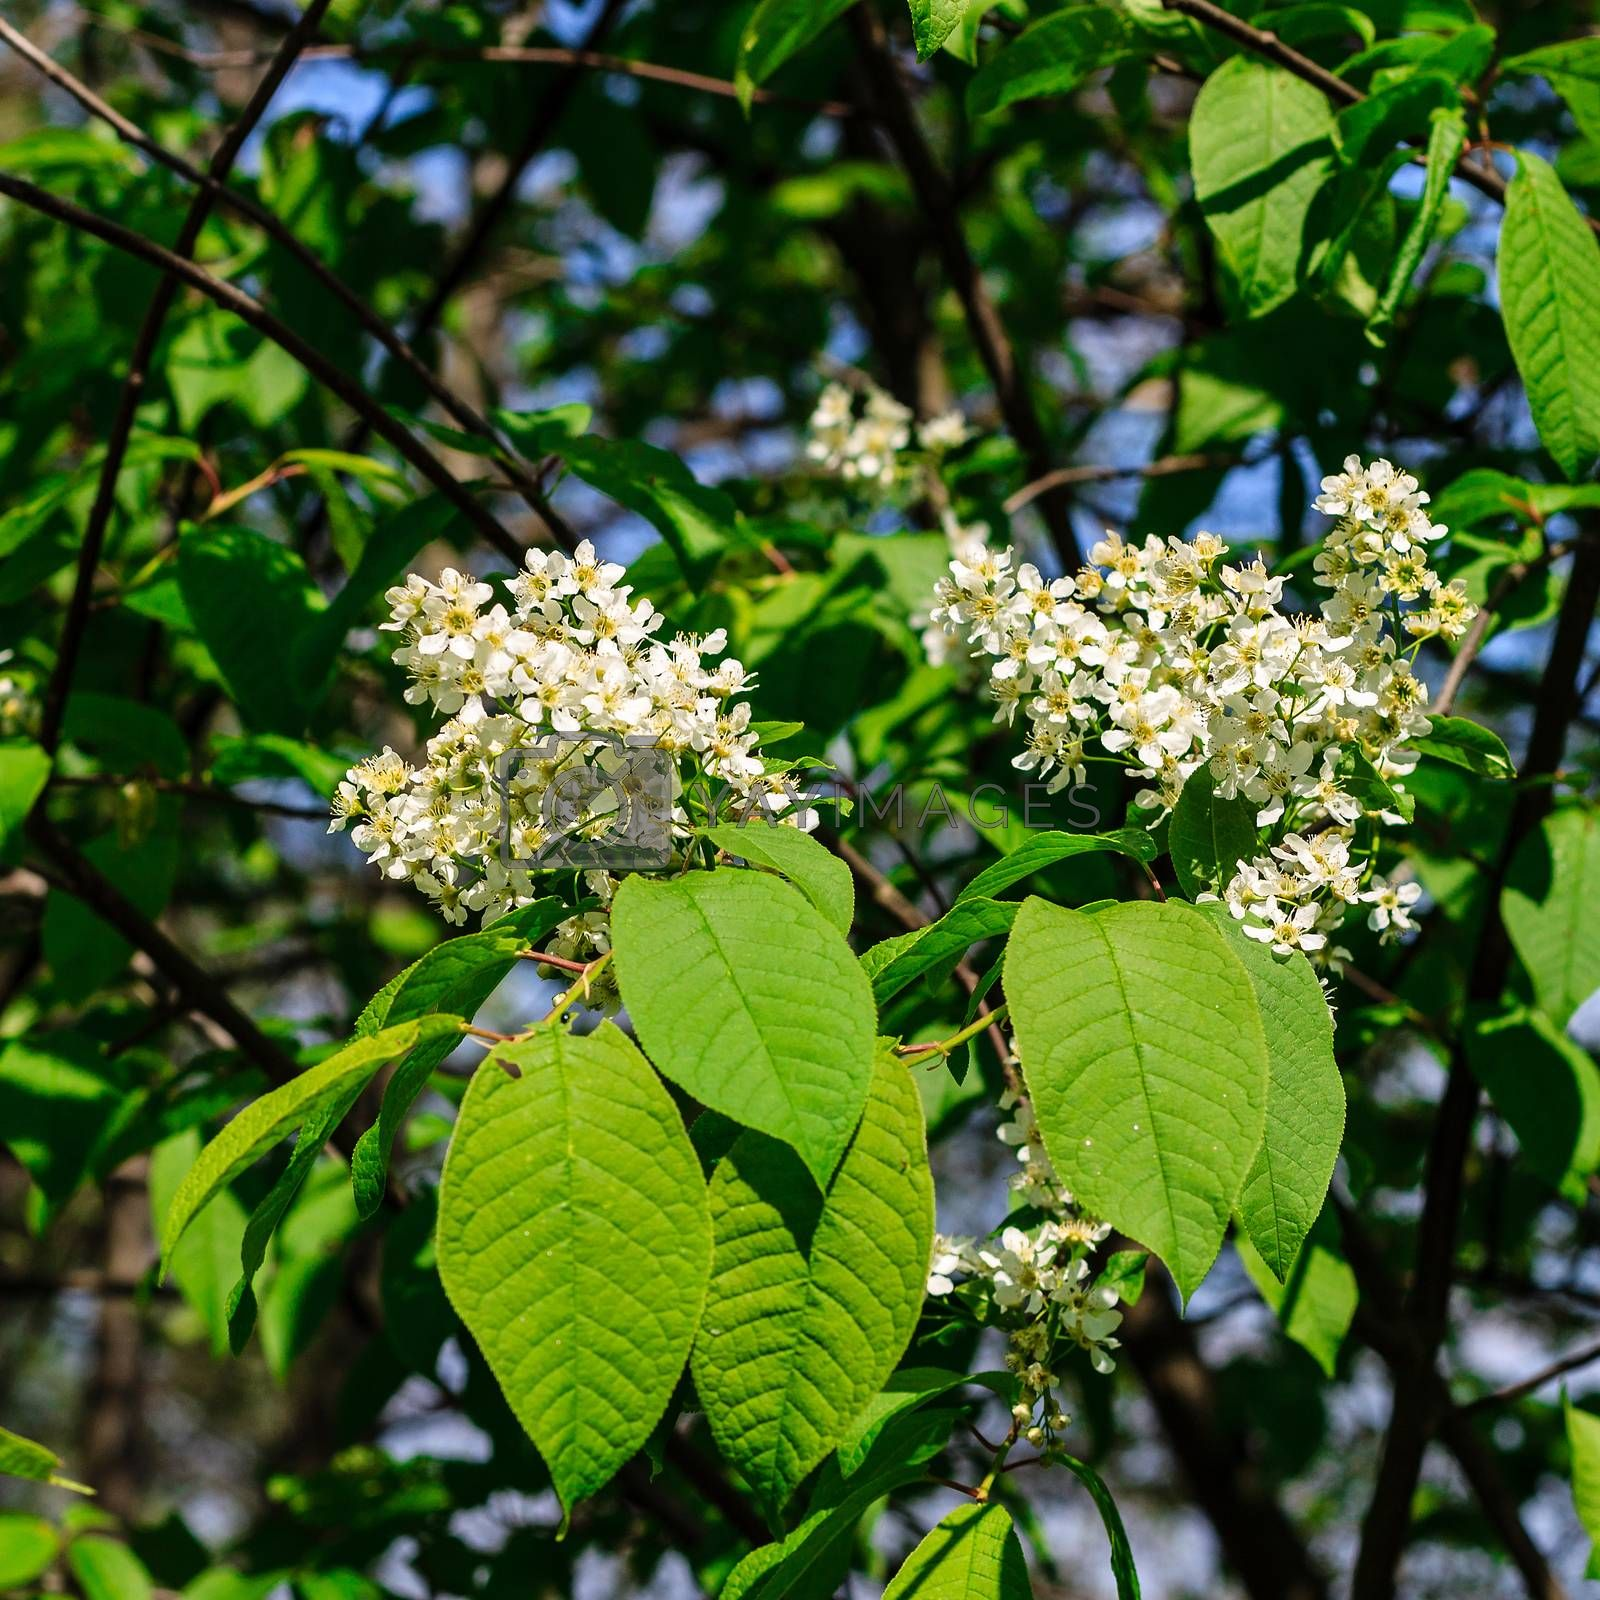 bird-cherry tree at spring season, May